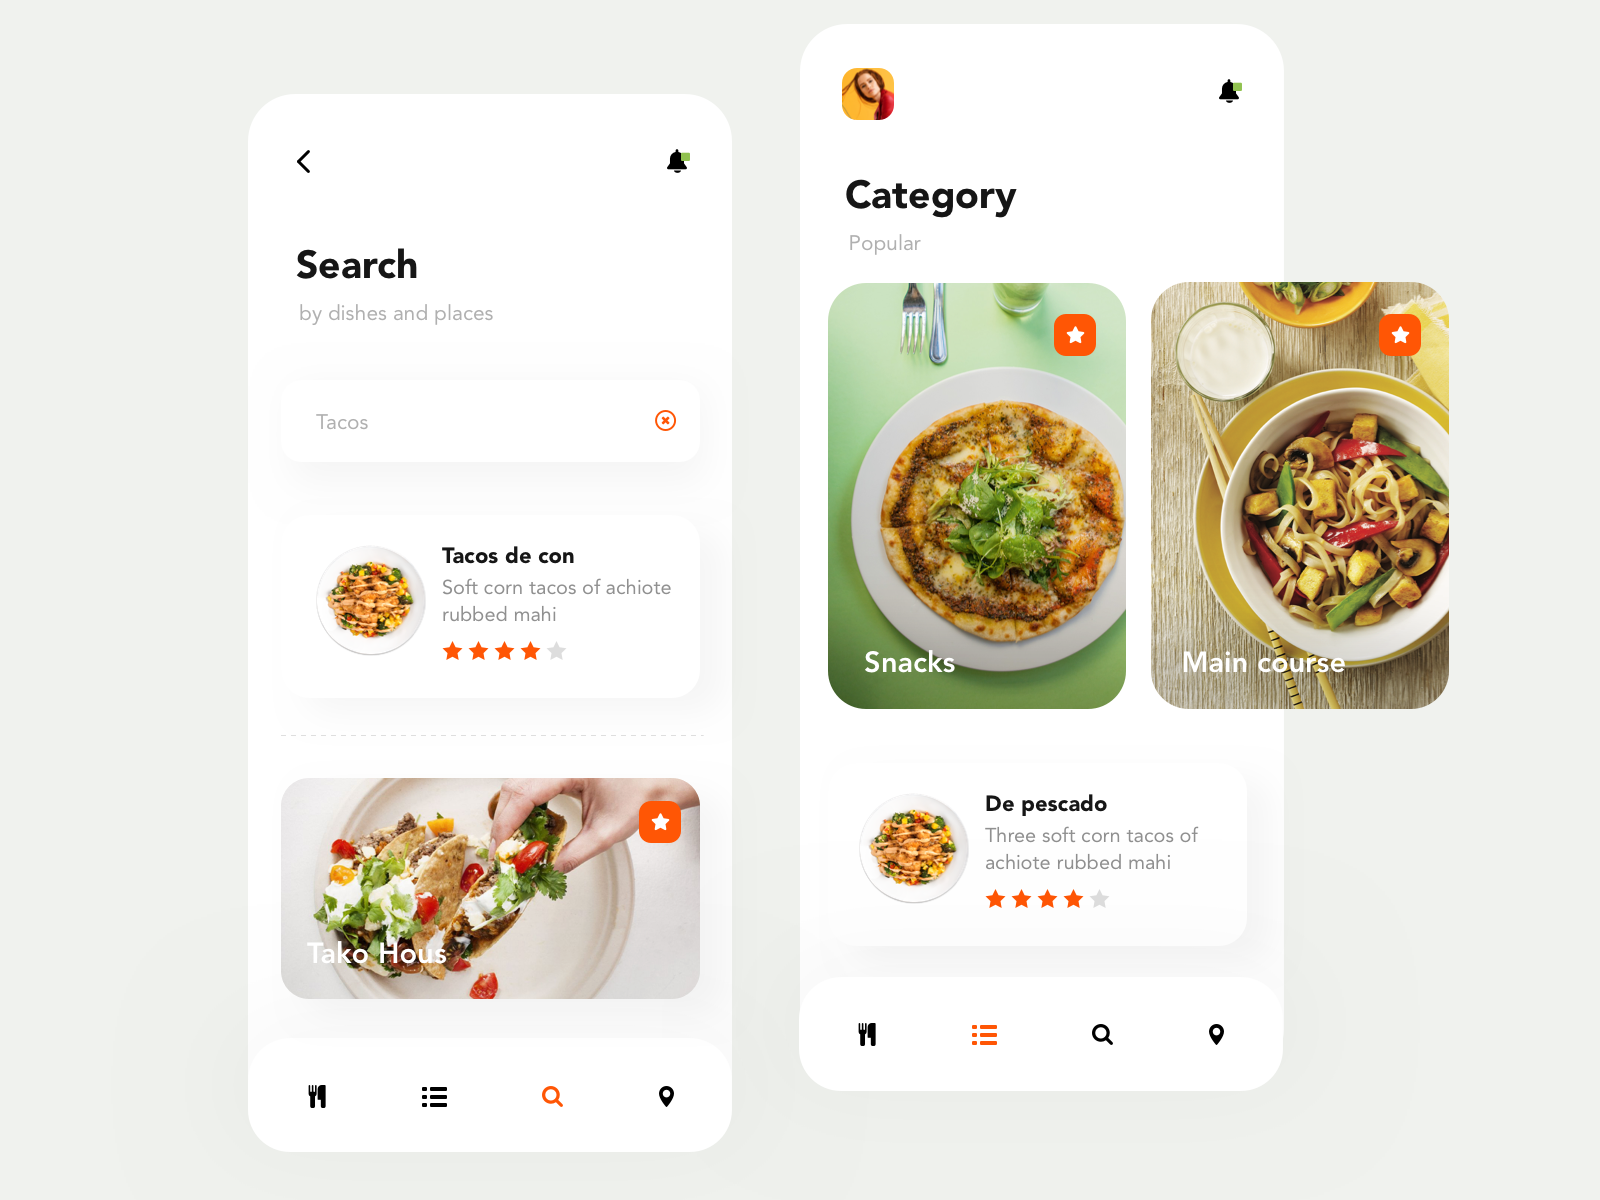 Calorie food tracking app search